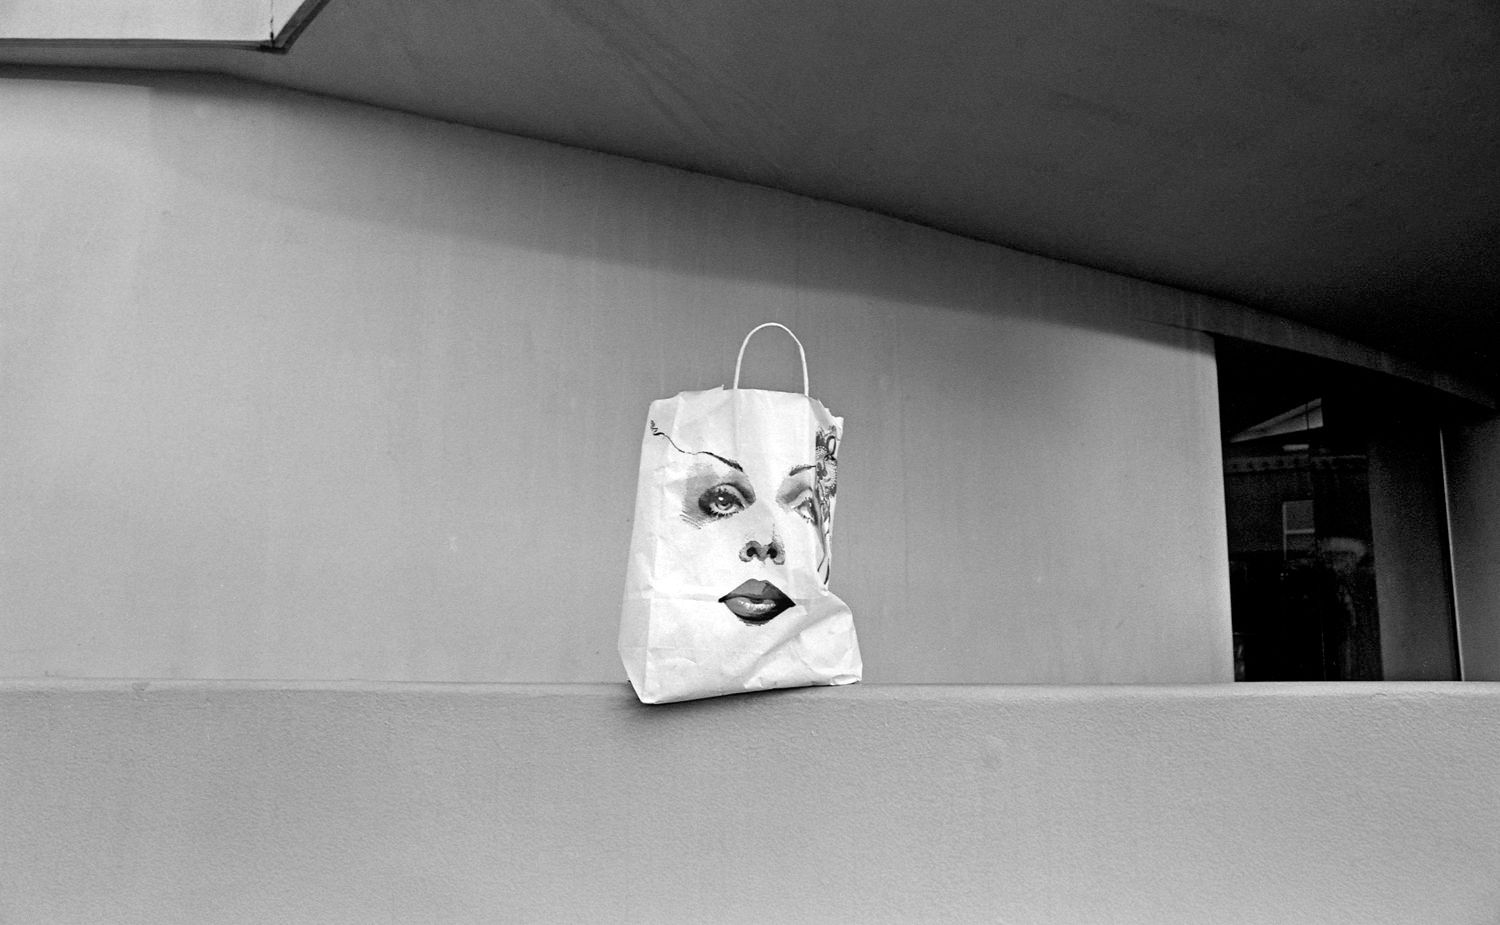 Paper Bag on Wall